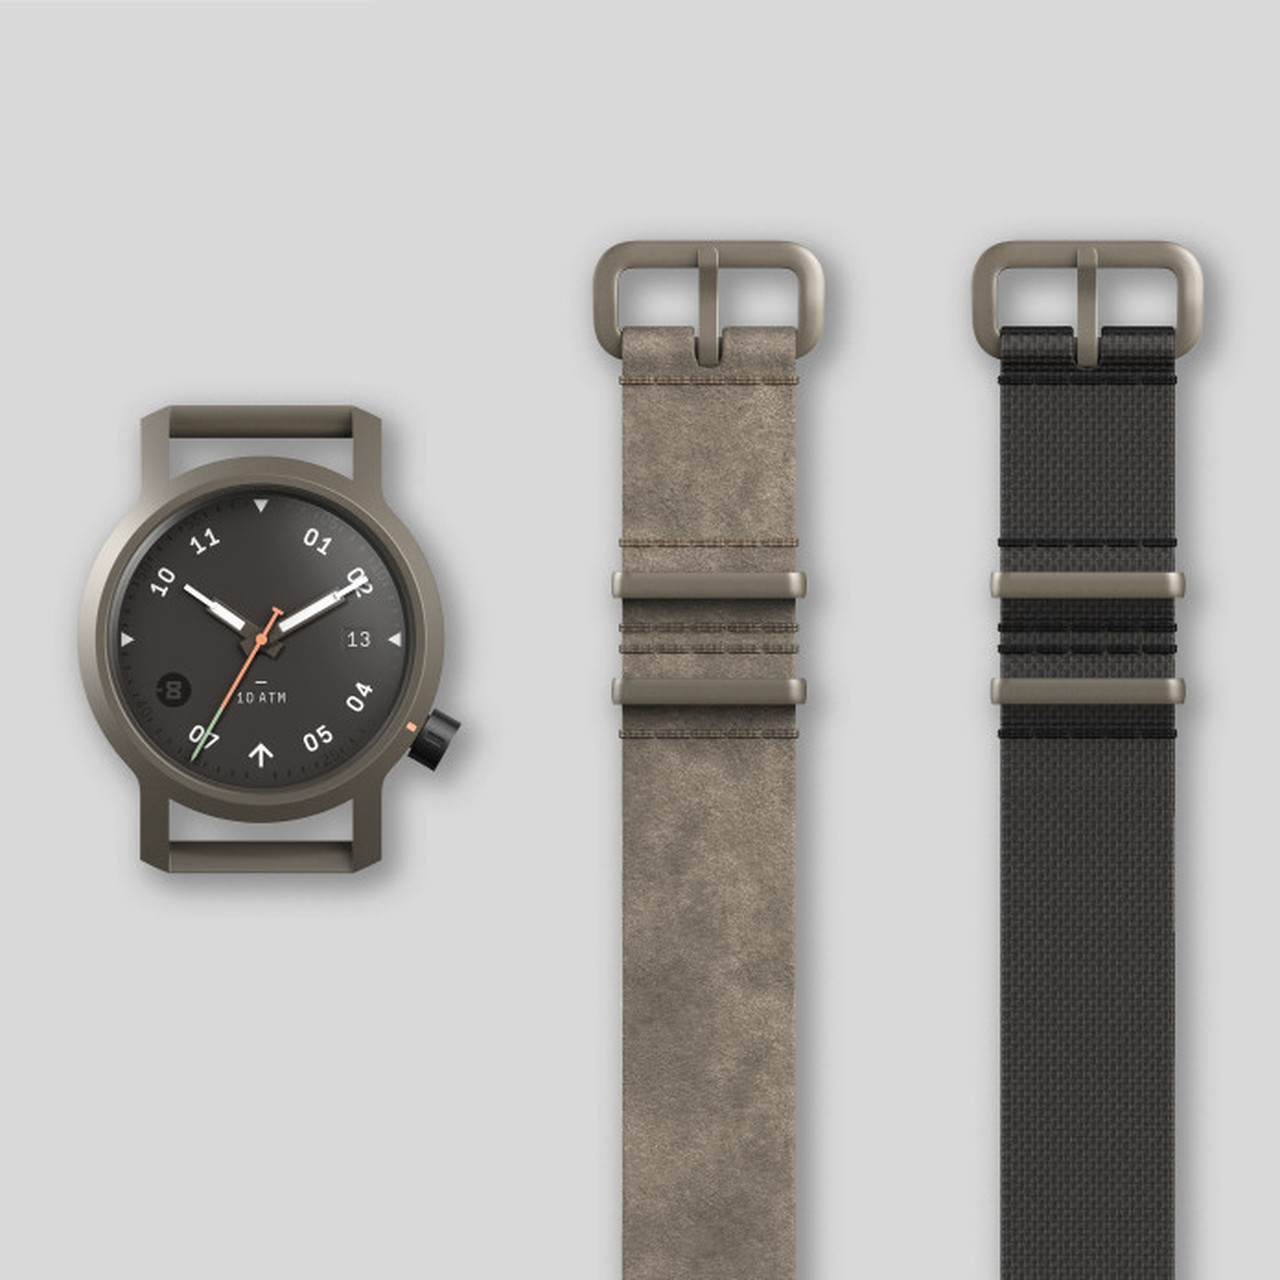 MINUS-8 Anza Watch in Desert Sand